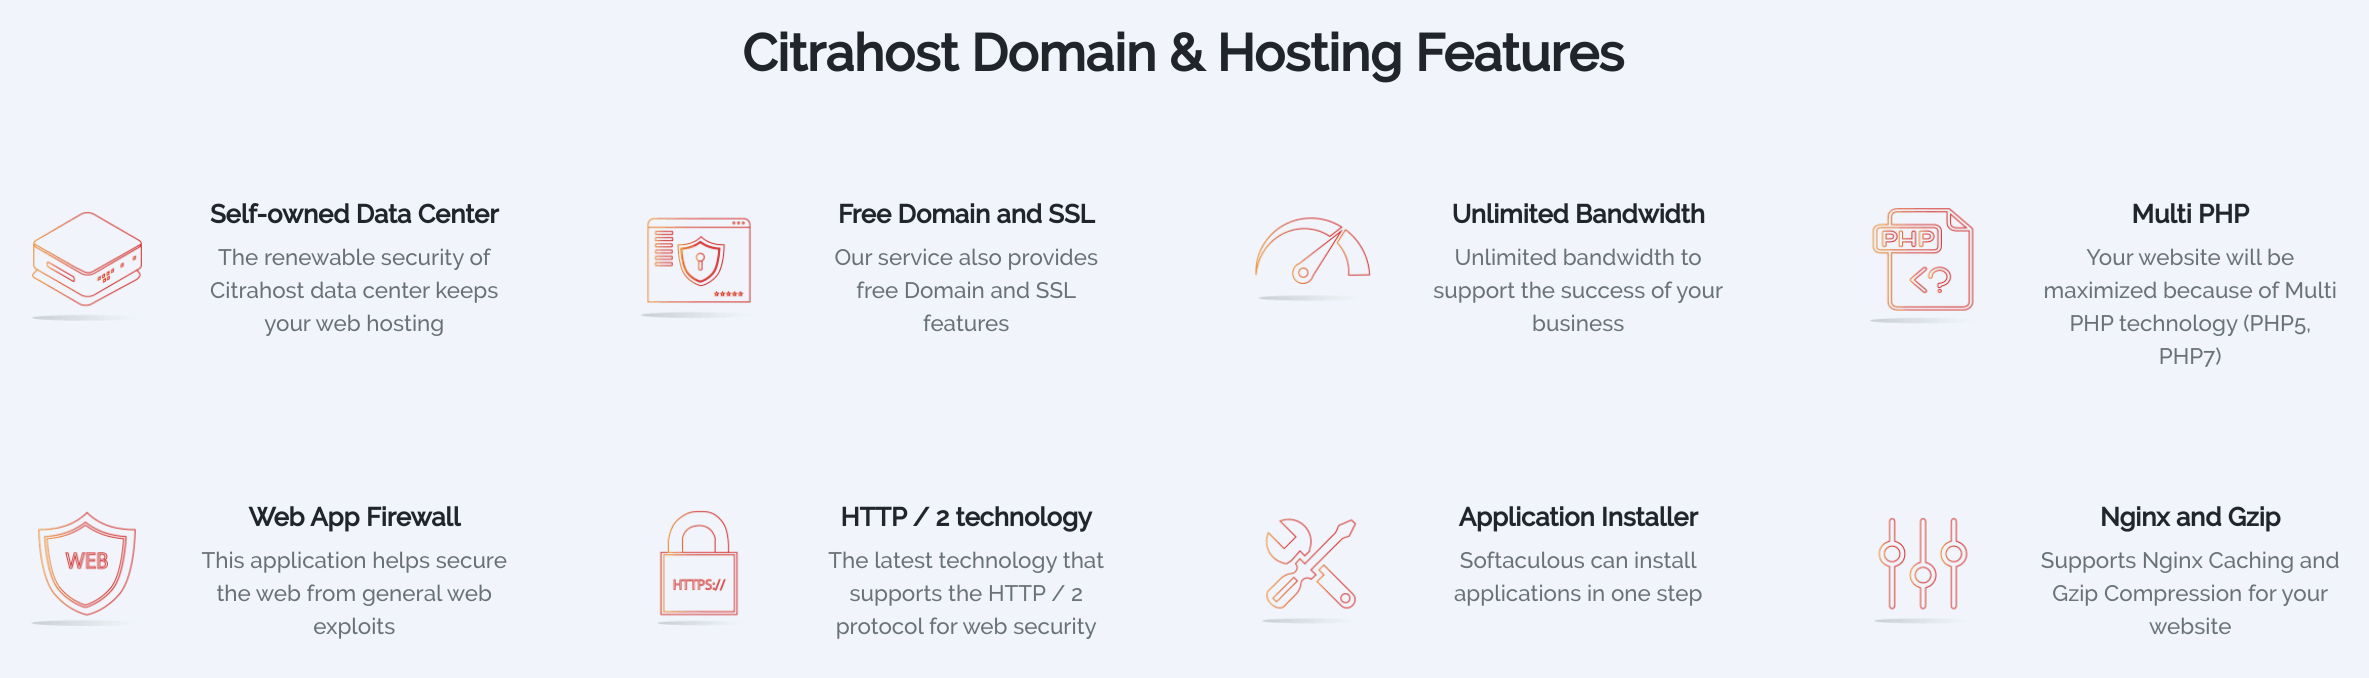 citrahost features